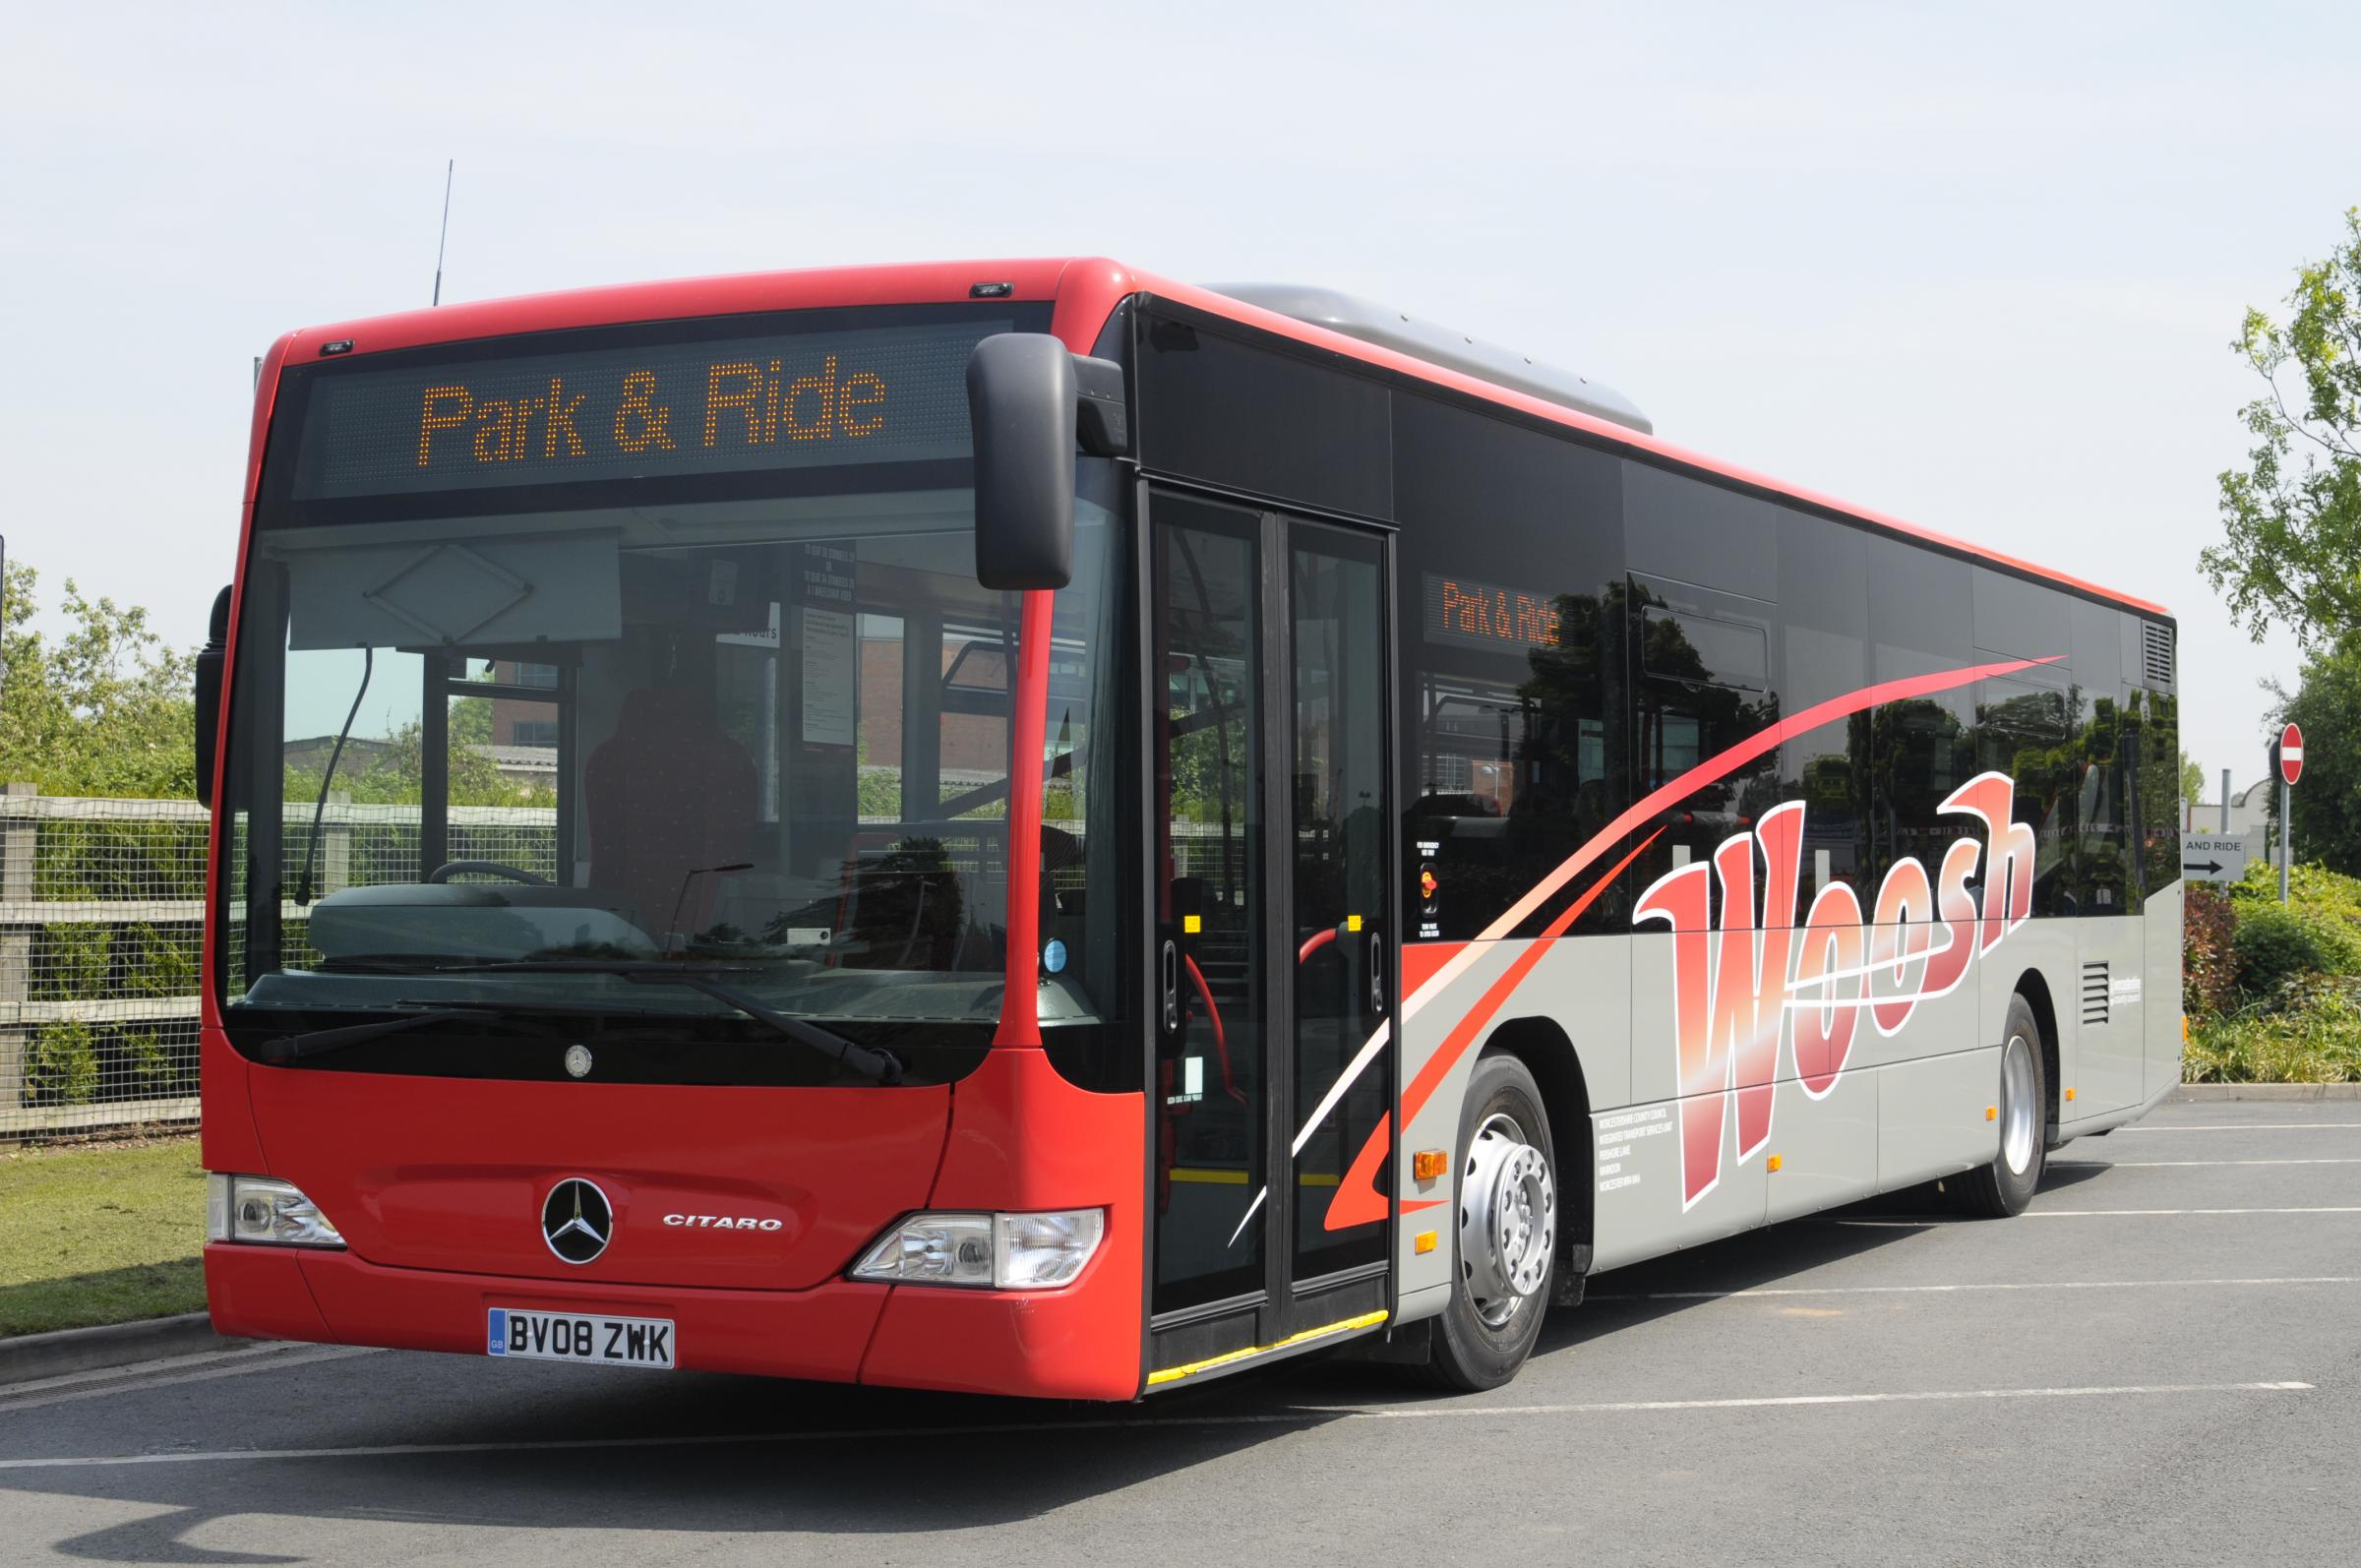 Evesham Half-Price Bus Fare Offer Extended Into 2014